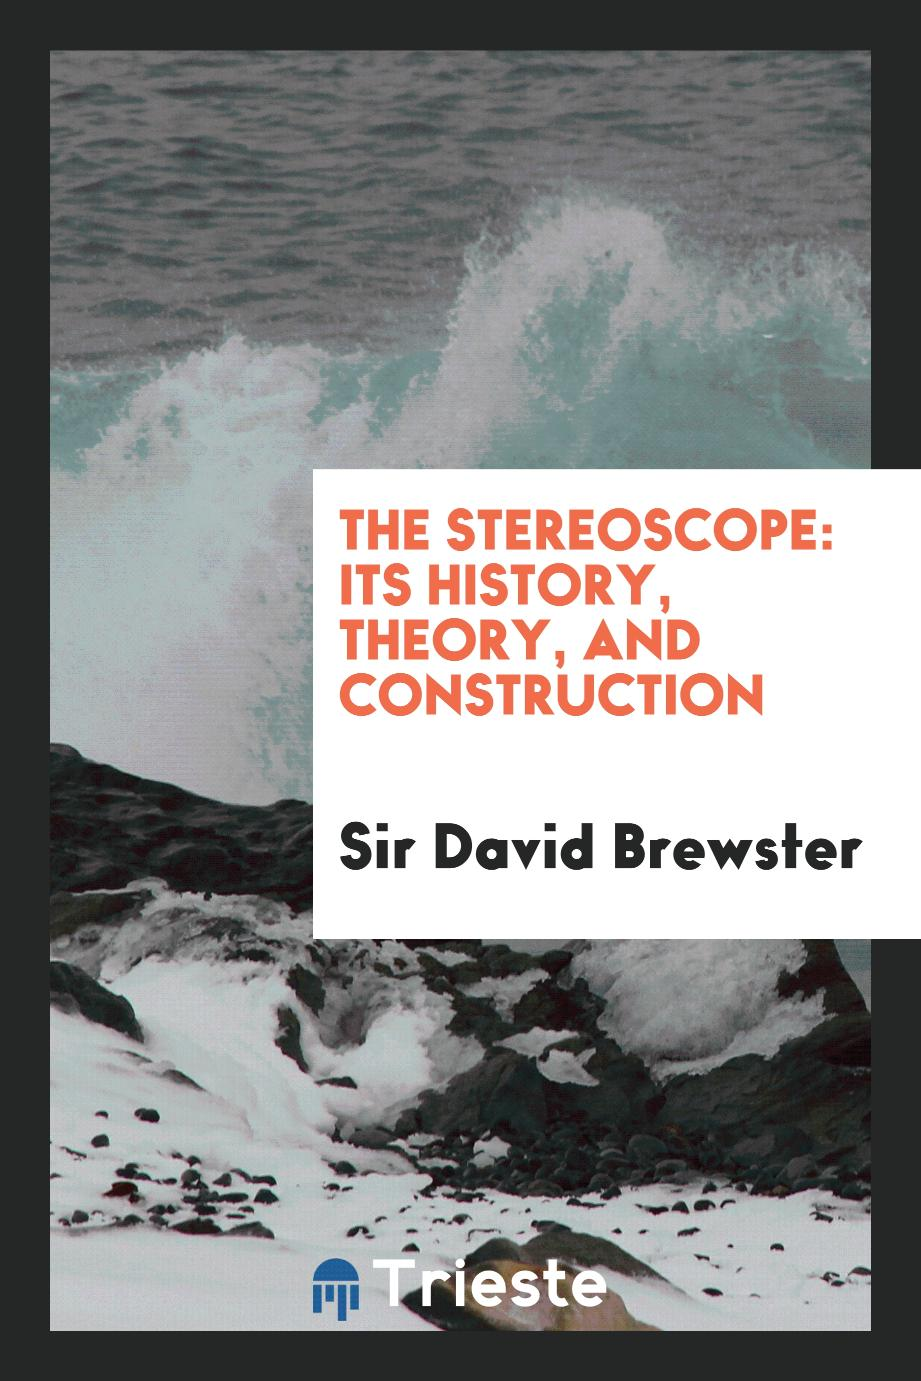 The Stereoscope: Its History, Theory, and Construction